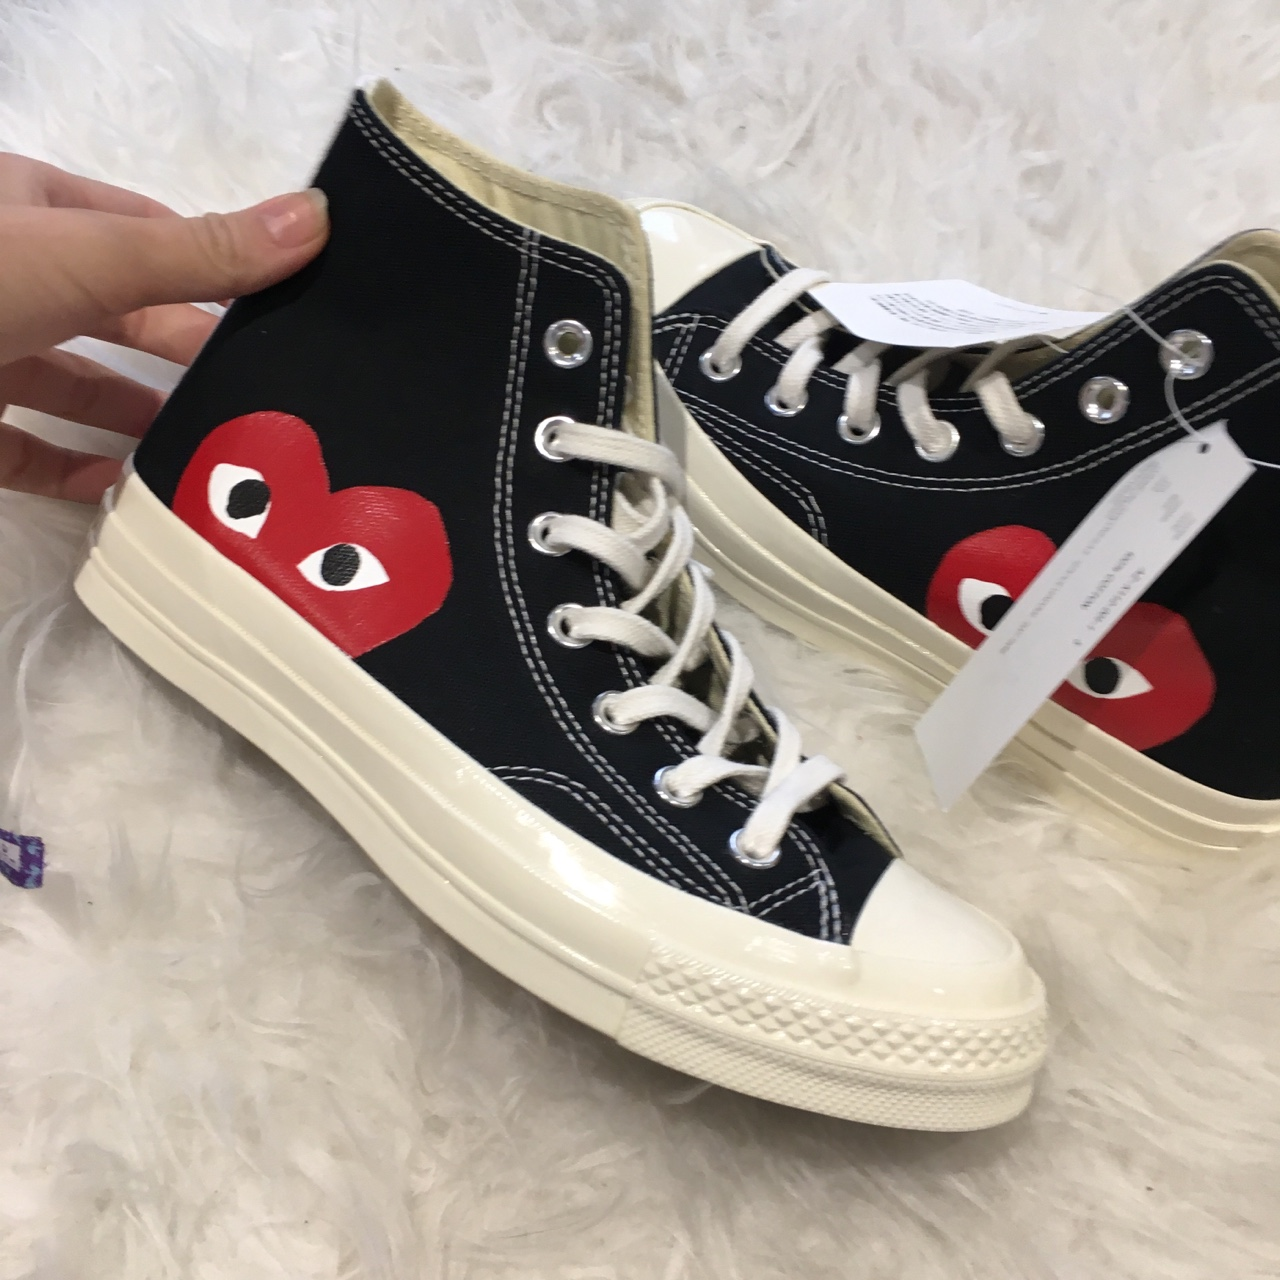 Brand new never worn CDG comme des